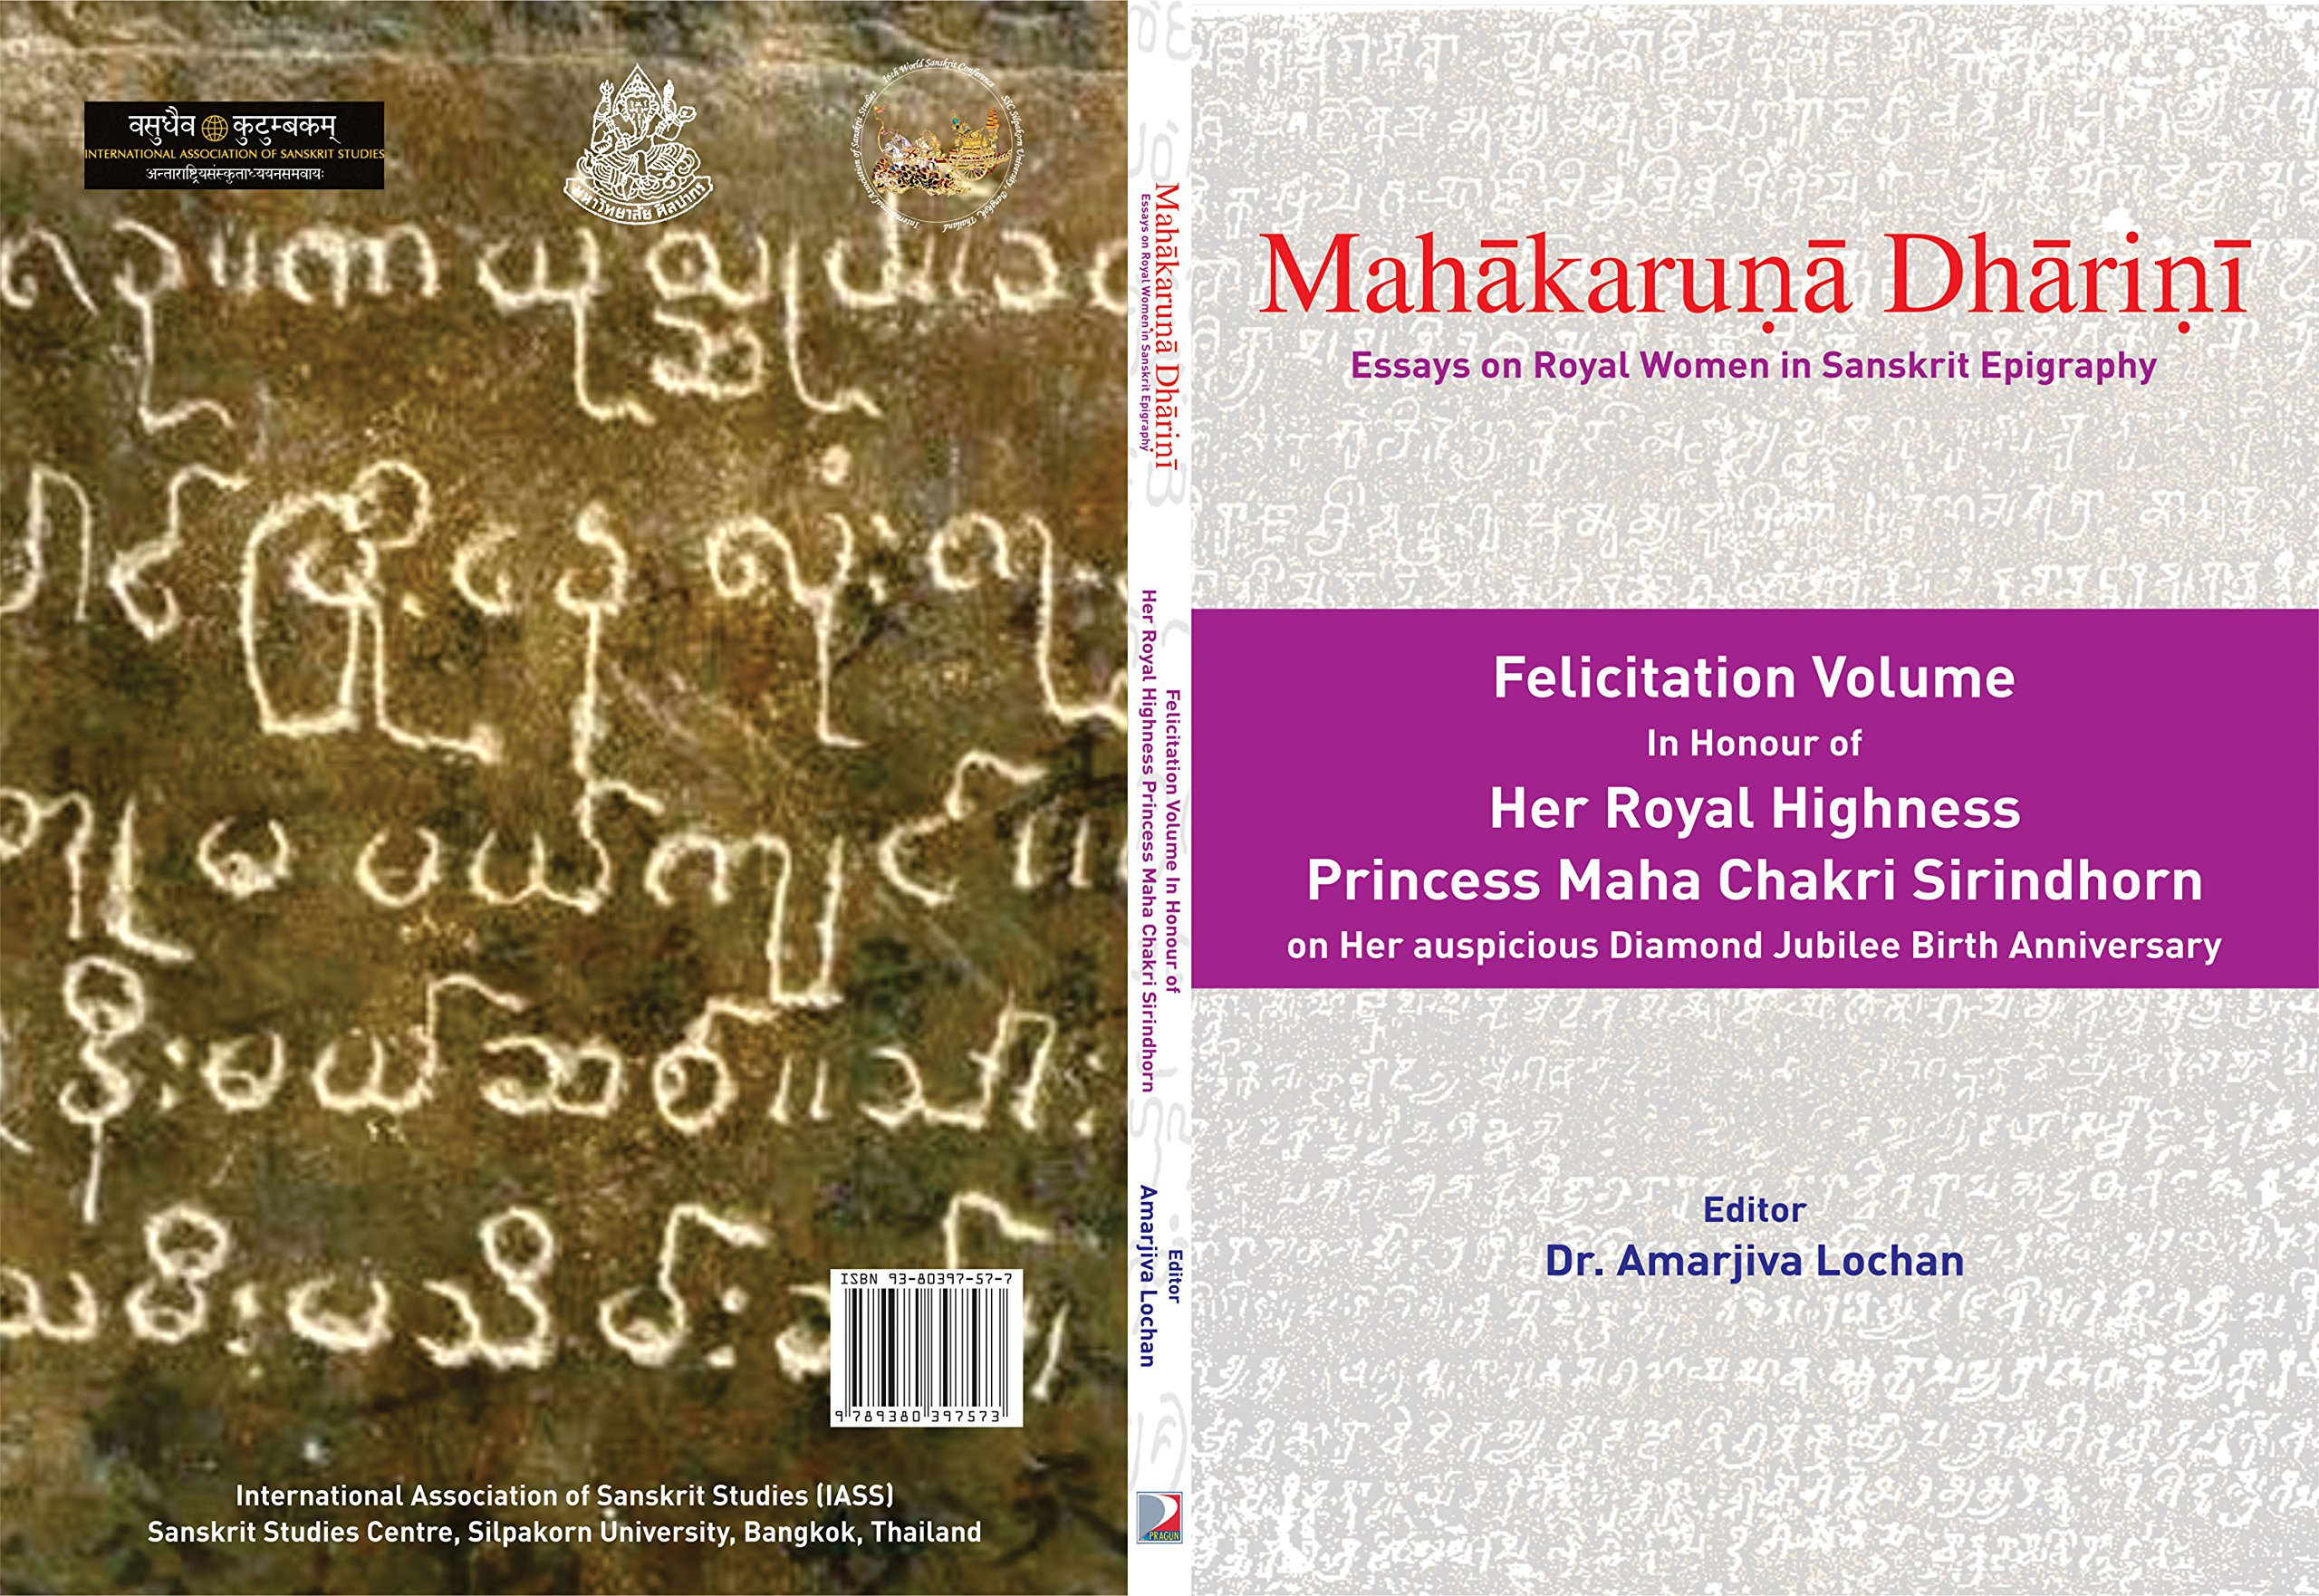 in buy mahakaruna dharini essays on royal women in in buy mahakaruna dharini essays on royal women in sanskrit epigraphy book online at low prices in mahakaruna dharini essays on royal women